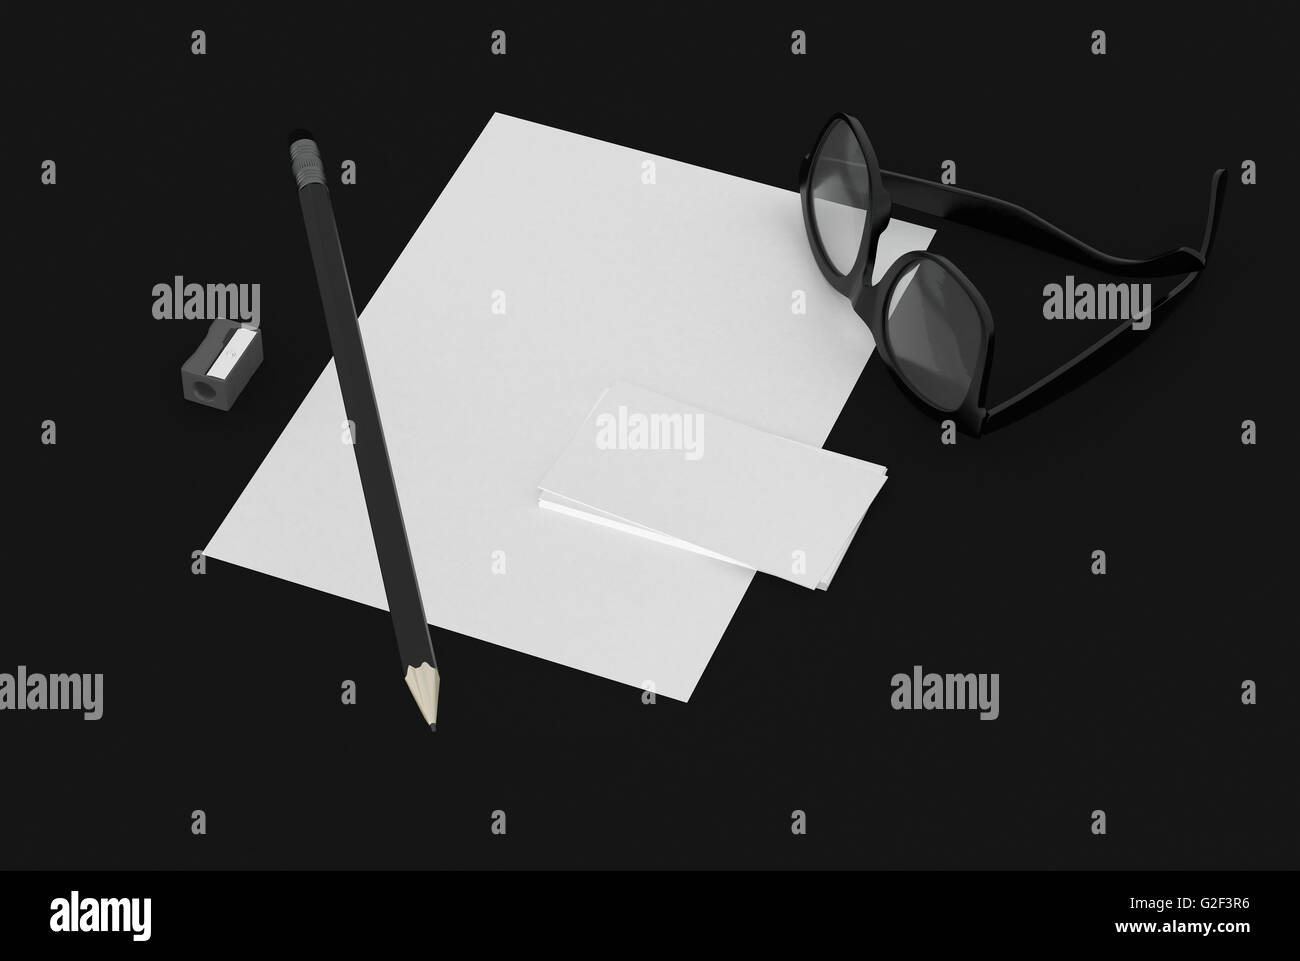 High Angle Still Life of Office Supplies on Black Desk - Black White Page and Business Card with Pencil, Sharpener Stock Photo